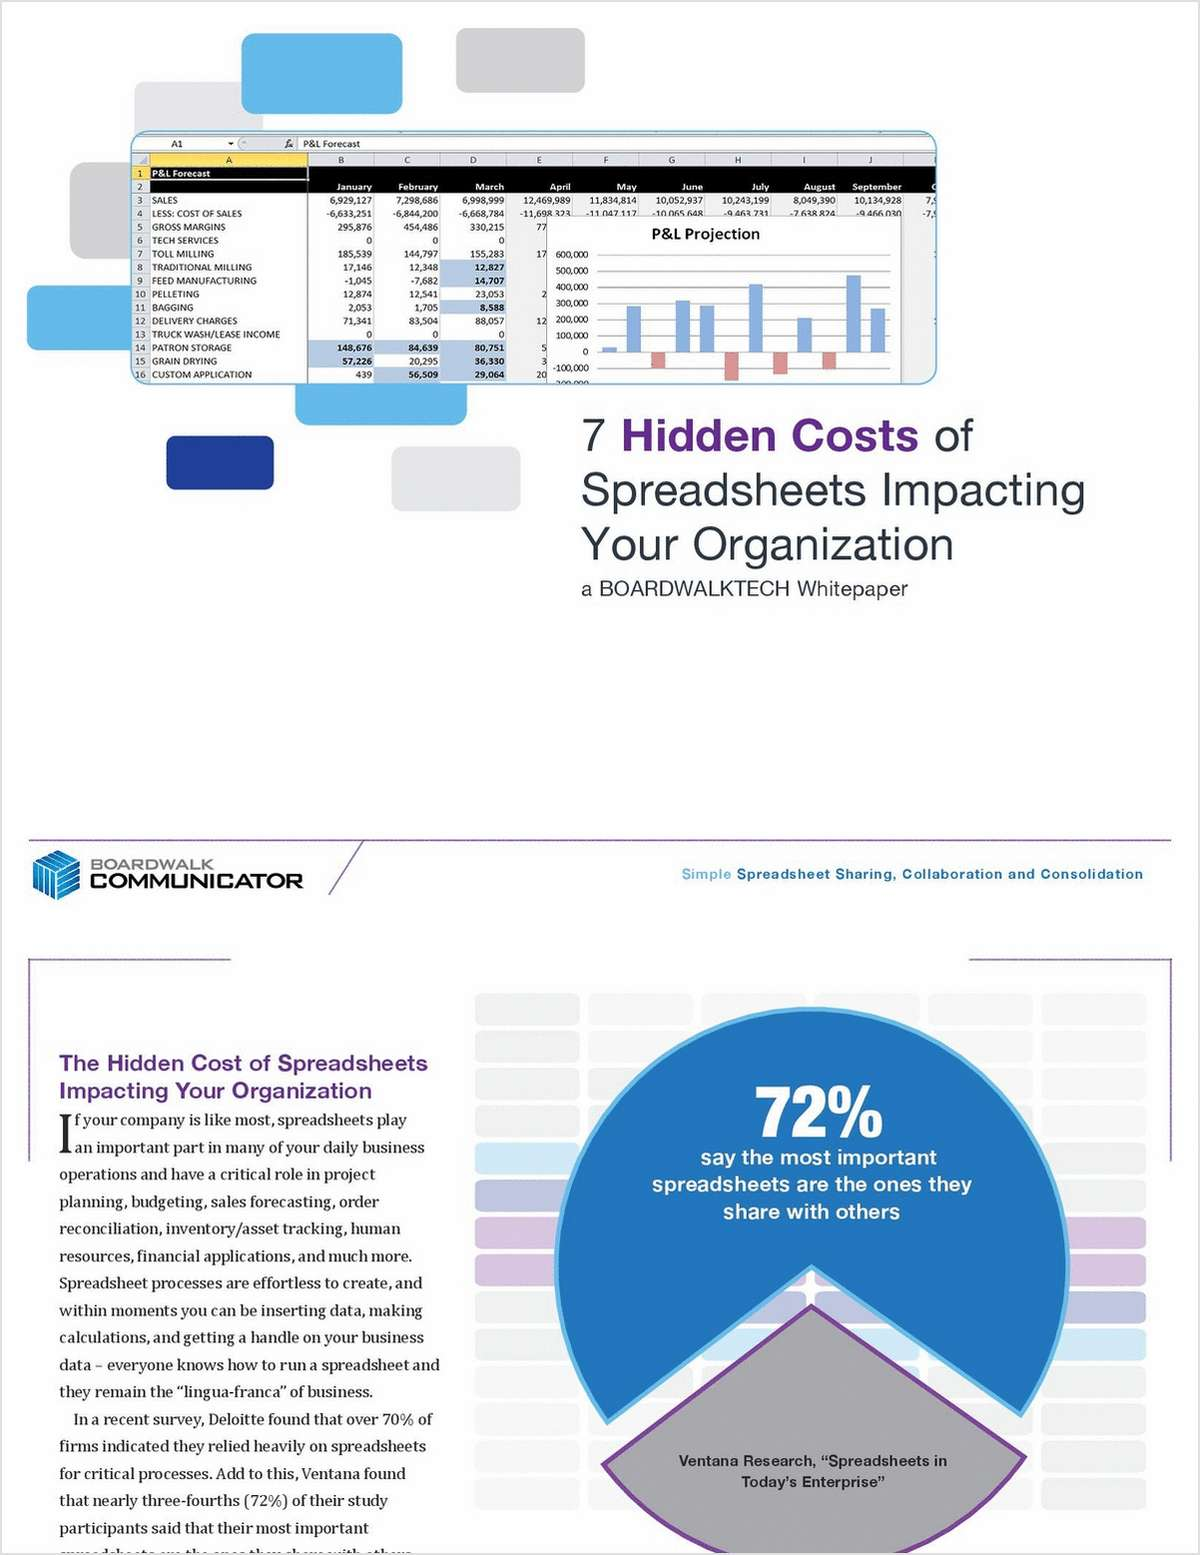 What are the 7 Hidden Costs of Spreadsheets?